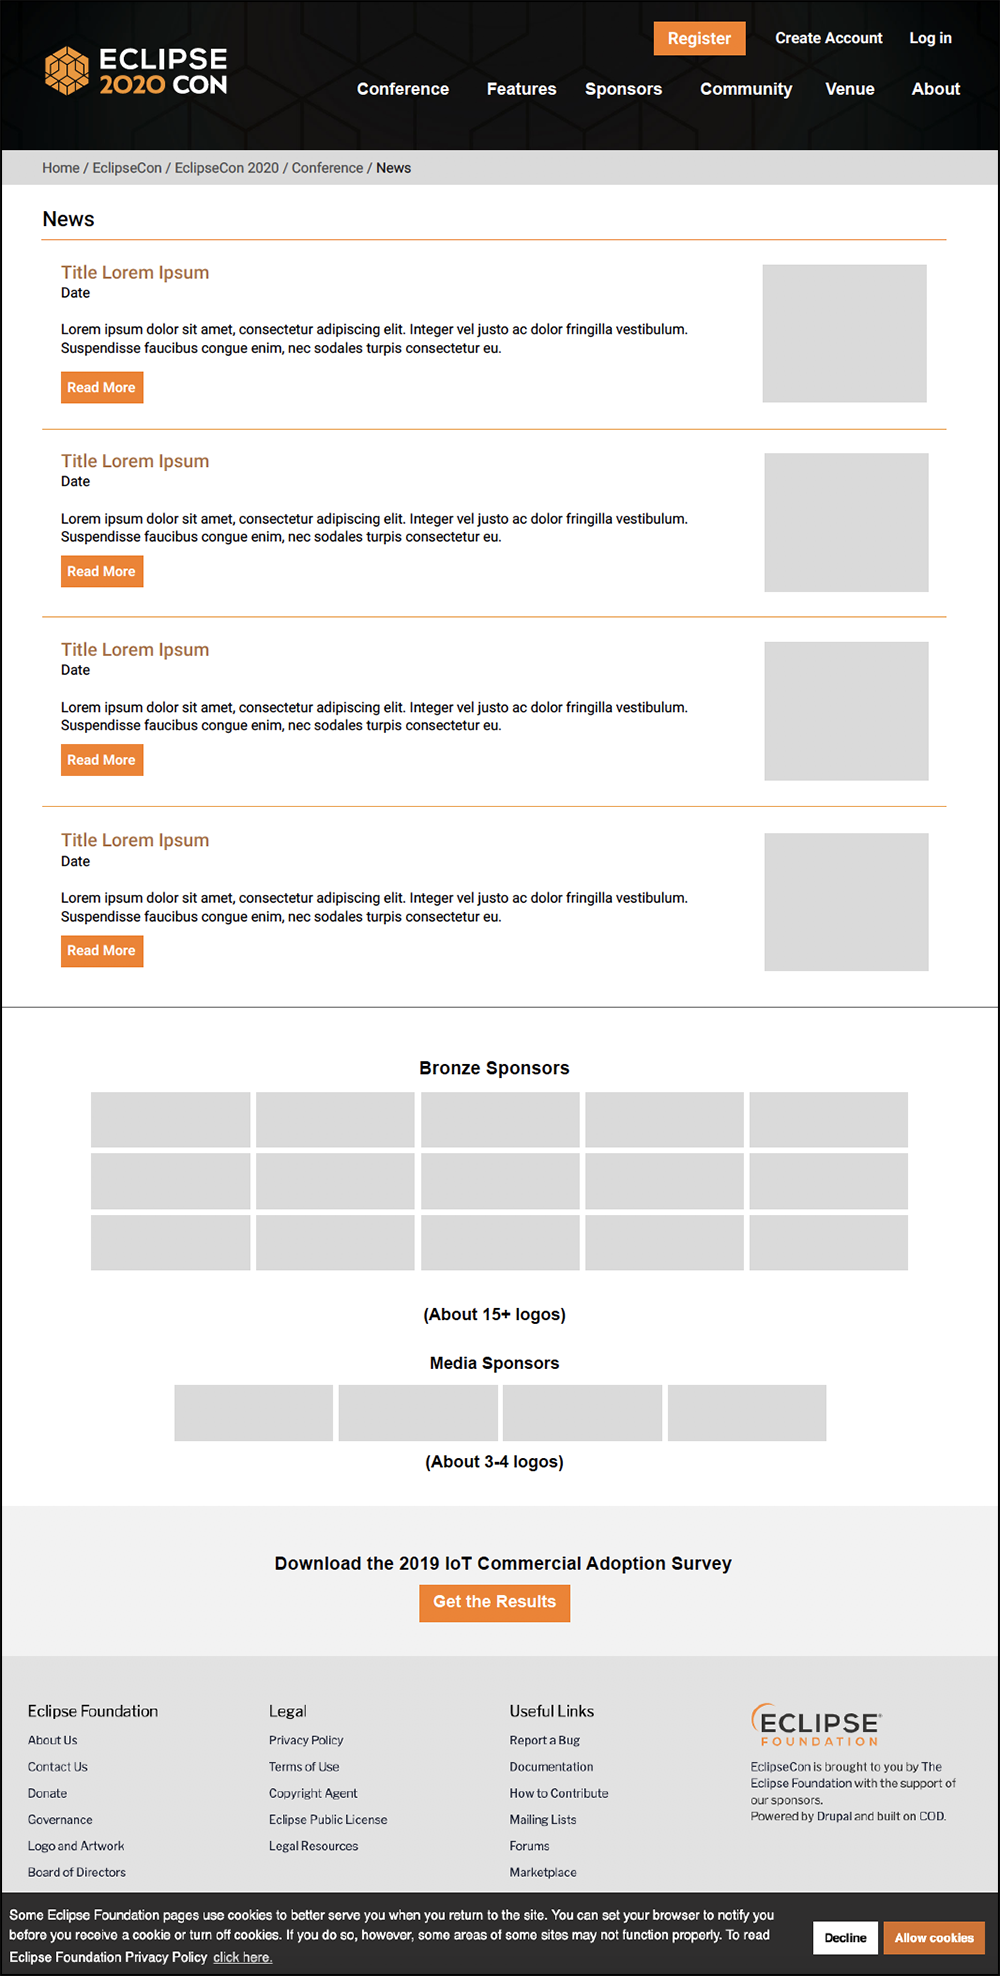 EclipseCon Website News Page Wireframe